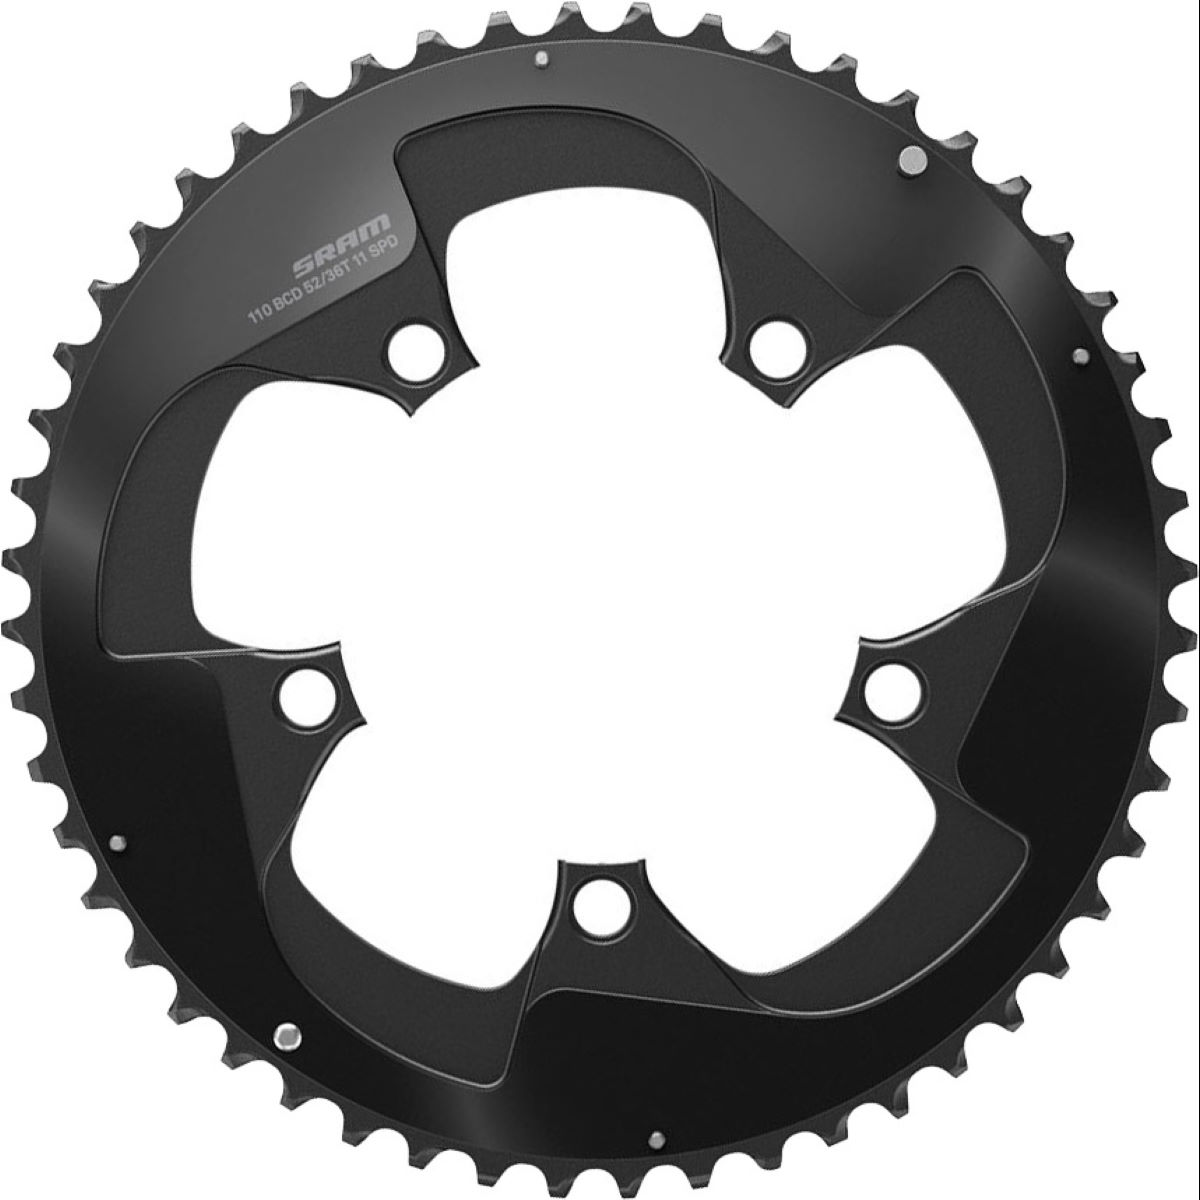 Sram Red X-glide Road Chain Ring - 53t Black  Chain Rings